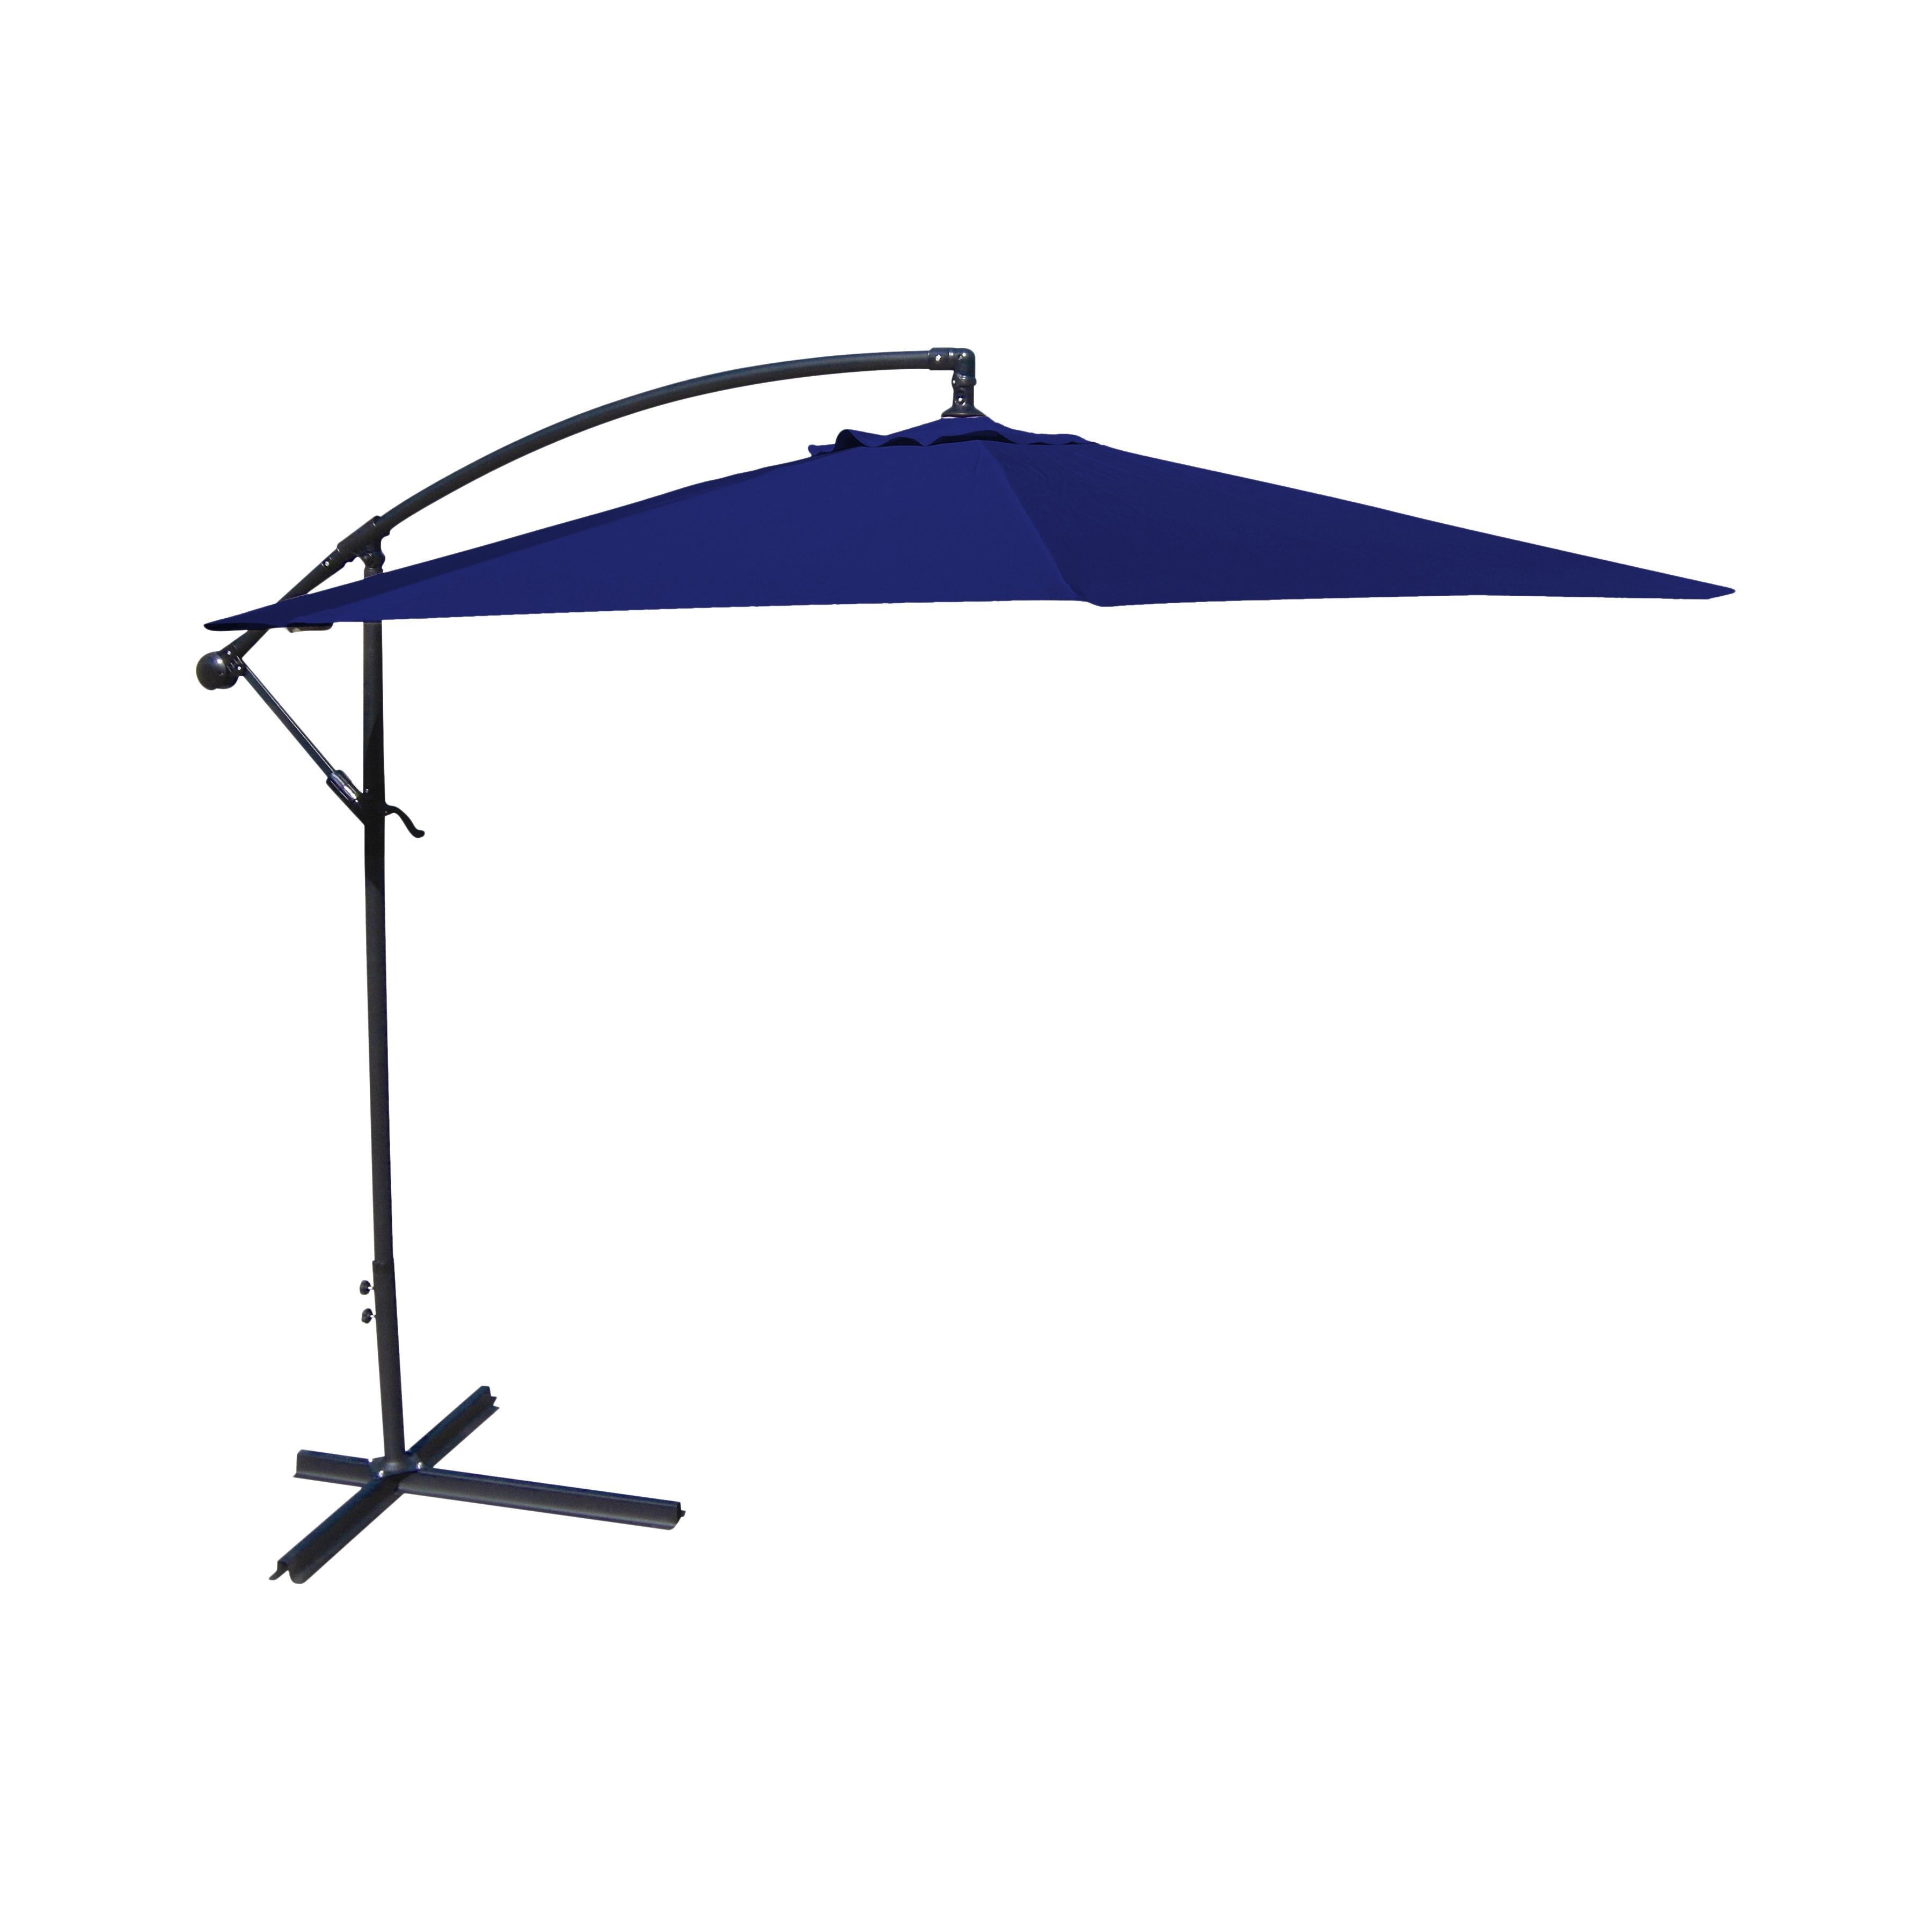 Trotman 10' Cantilever Umbrella (View 2 of 20)